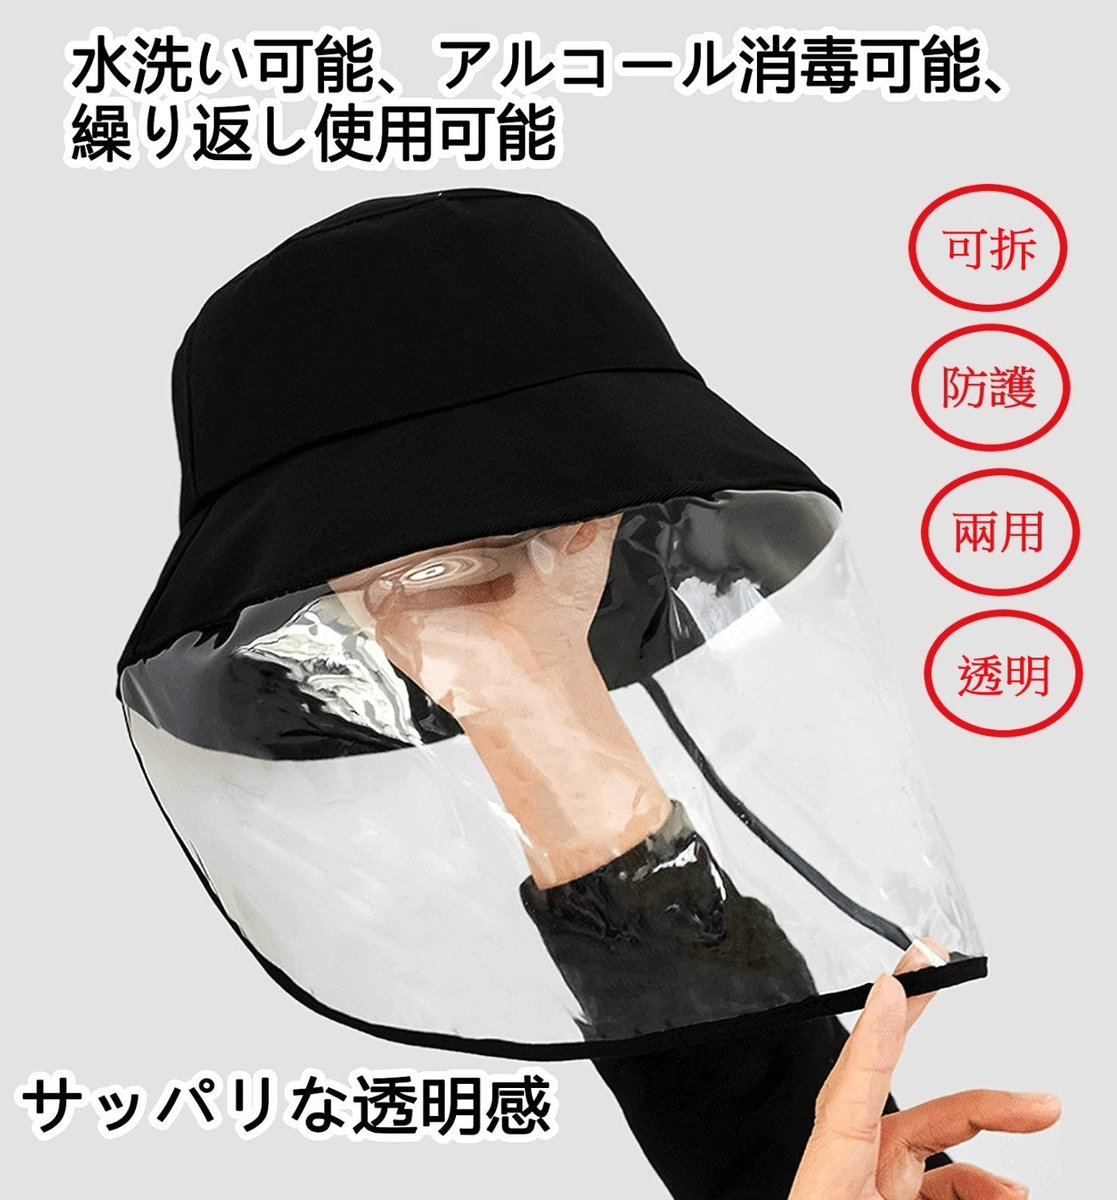 Fisherman Hat w/ Detachable Face Shield for Droplet Protection & Epidemic Prevention (Velcro Tape)